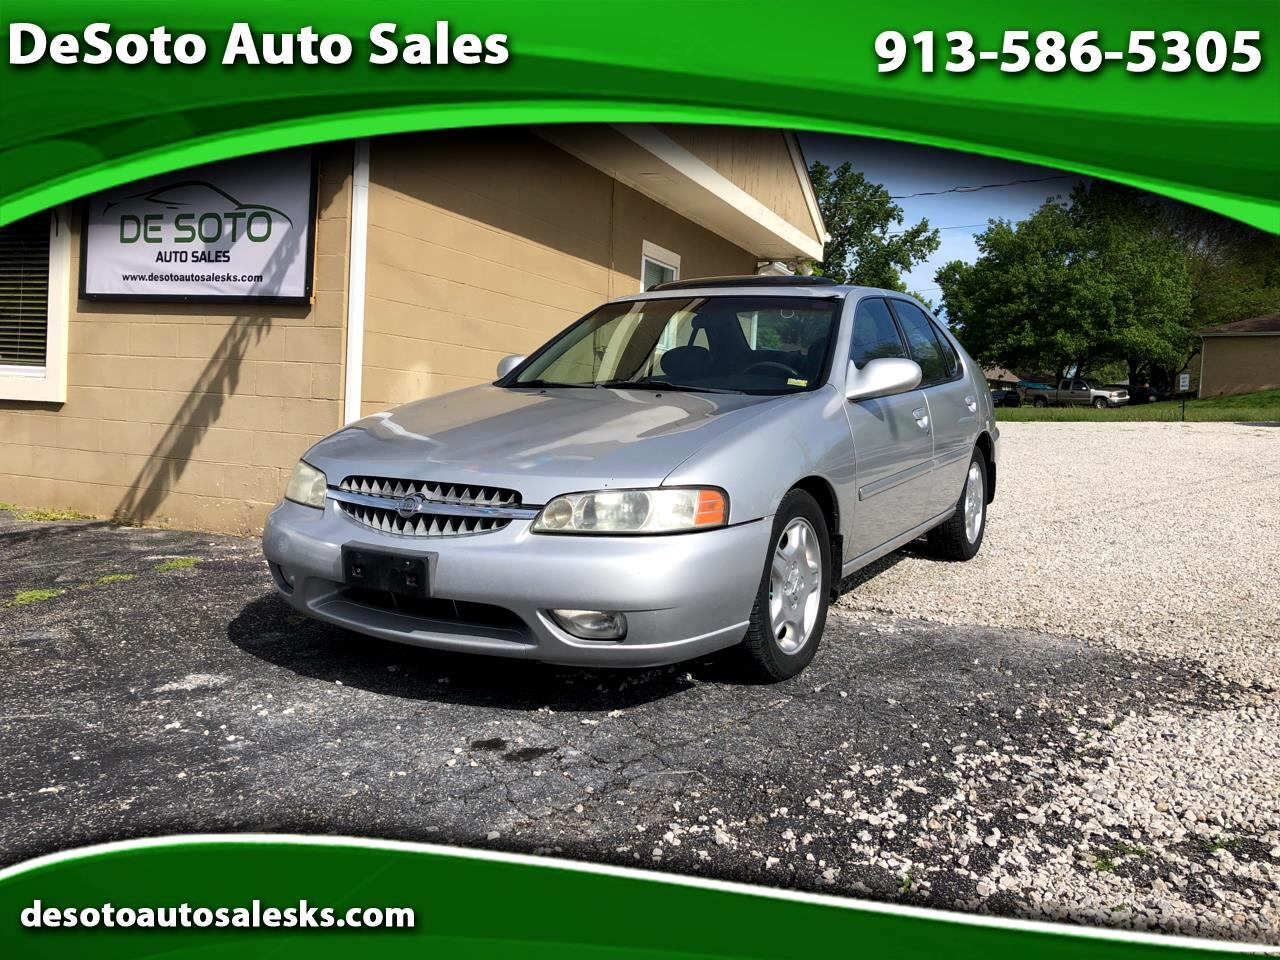 2001 Nissan Altima  for sale VIN: 1N4DL01A71C225442